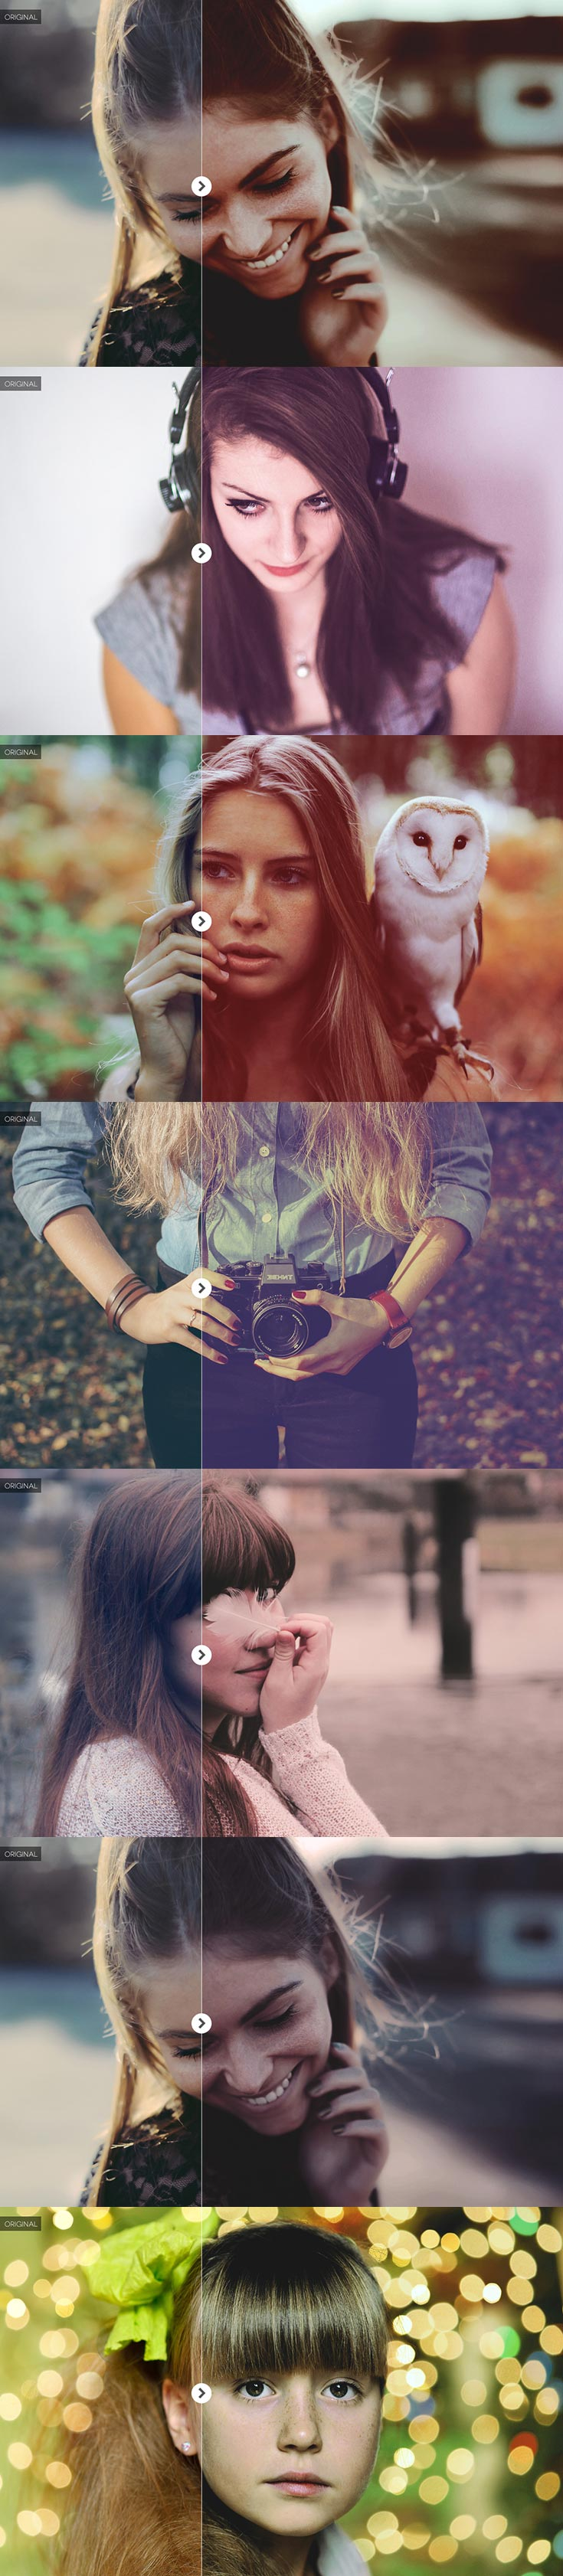 40 Free Effect Photoshop Actions